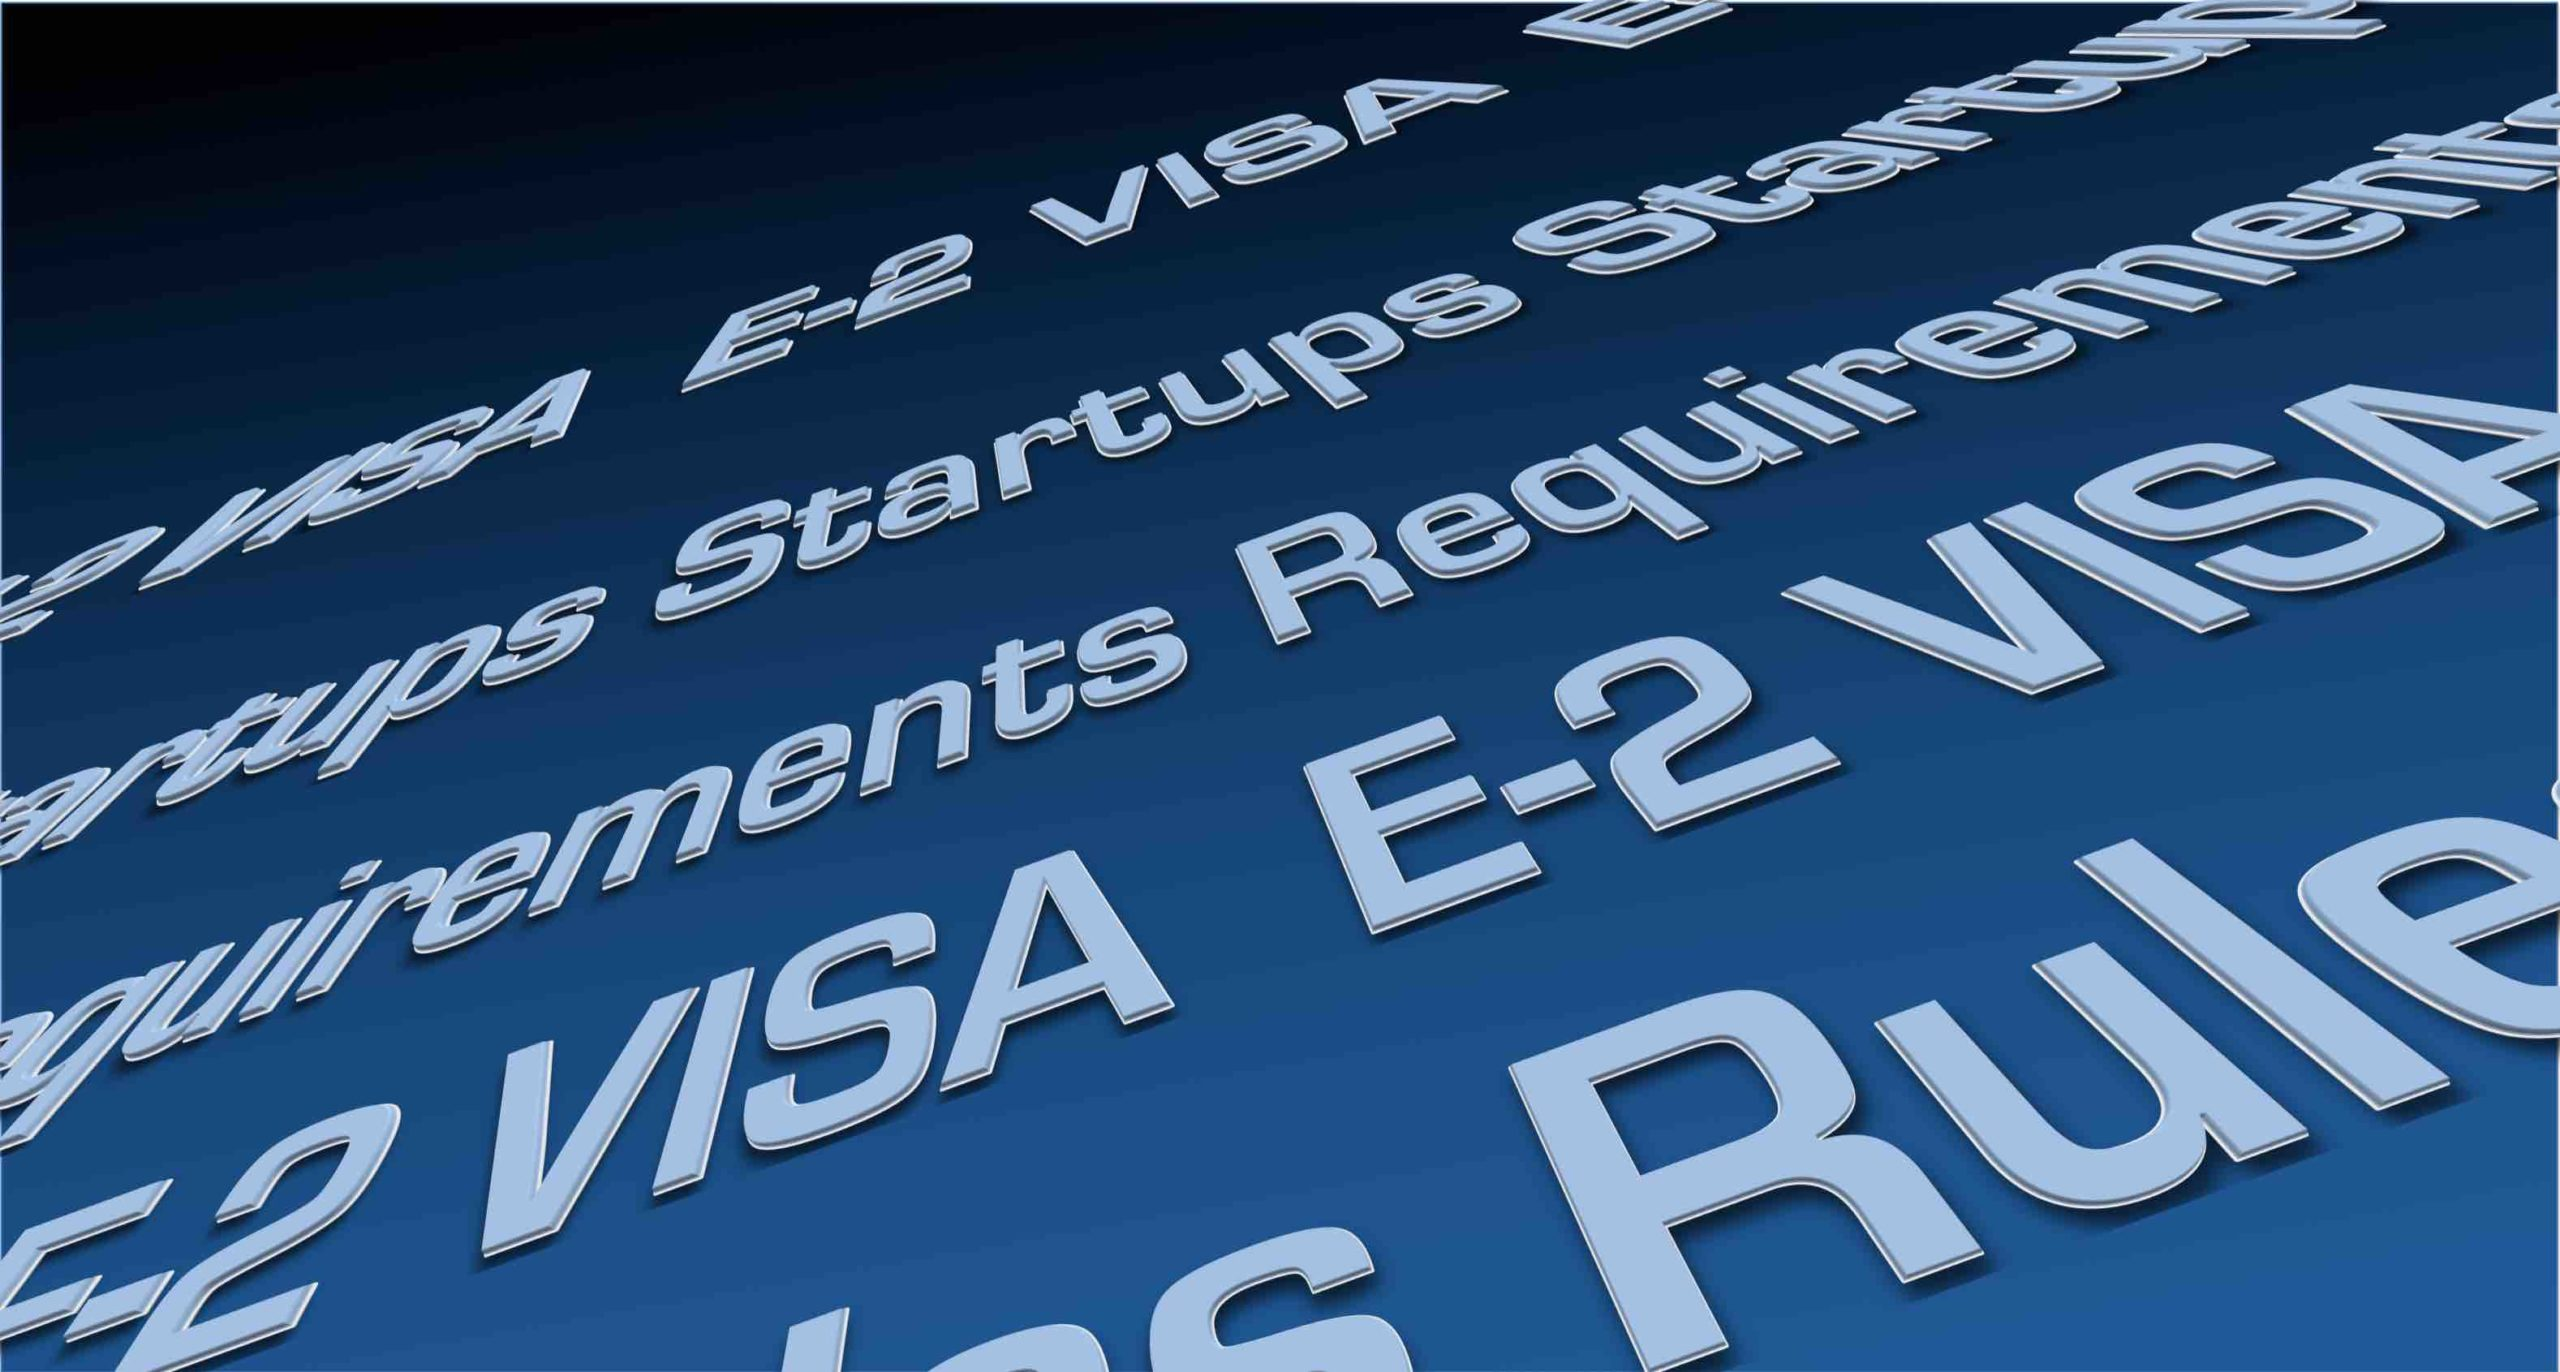 E2 Visa Requirements for Startups [Infographic]